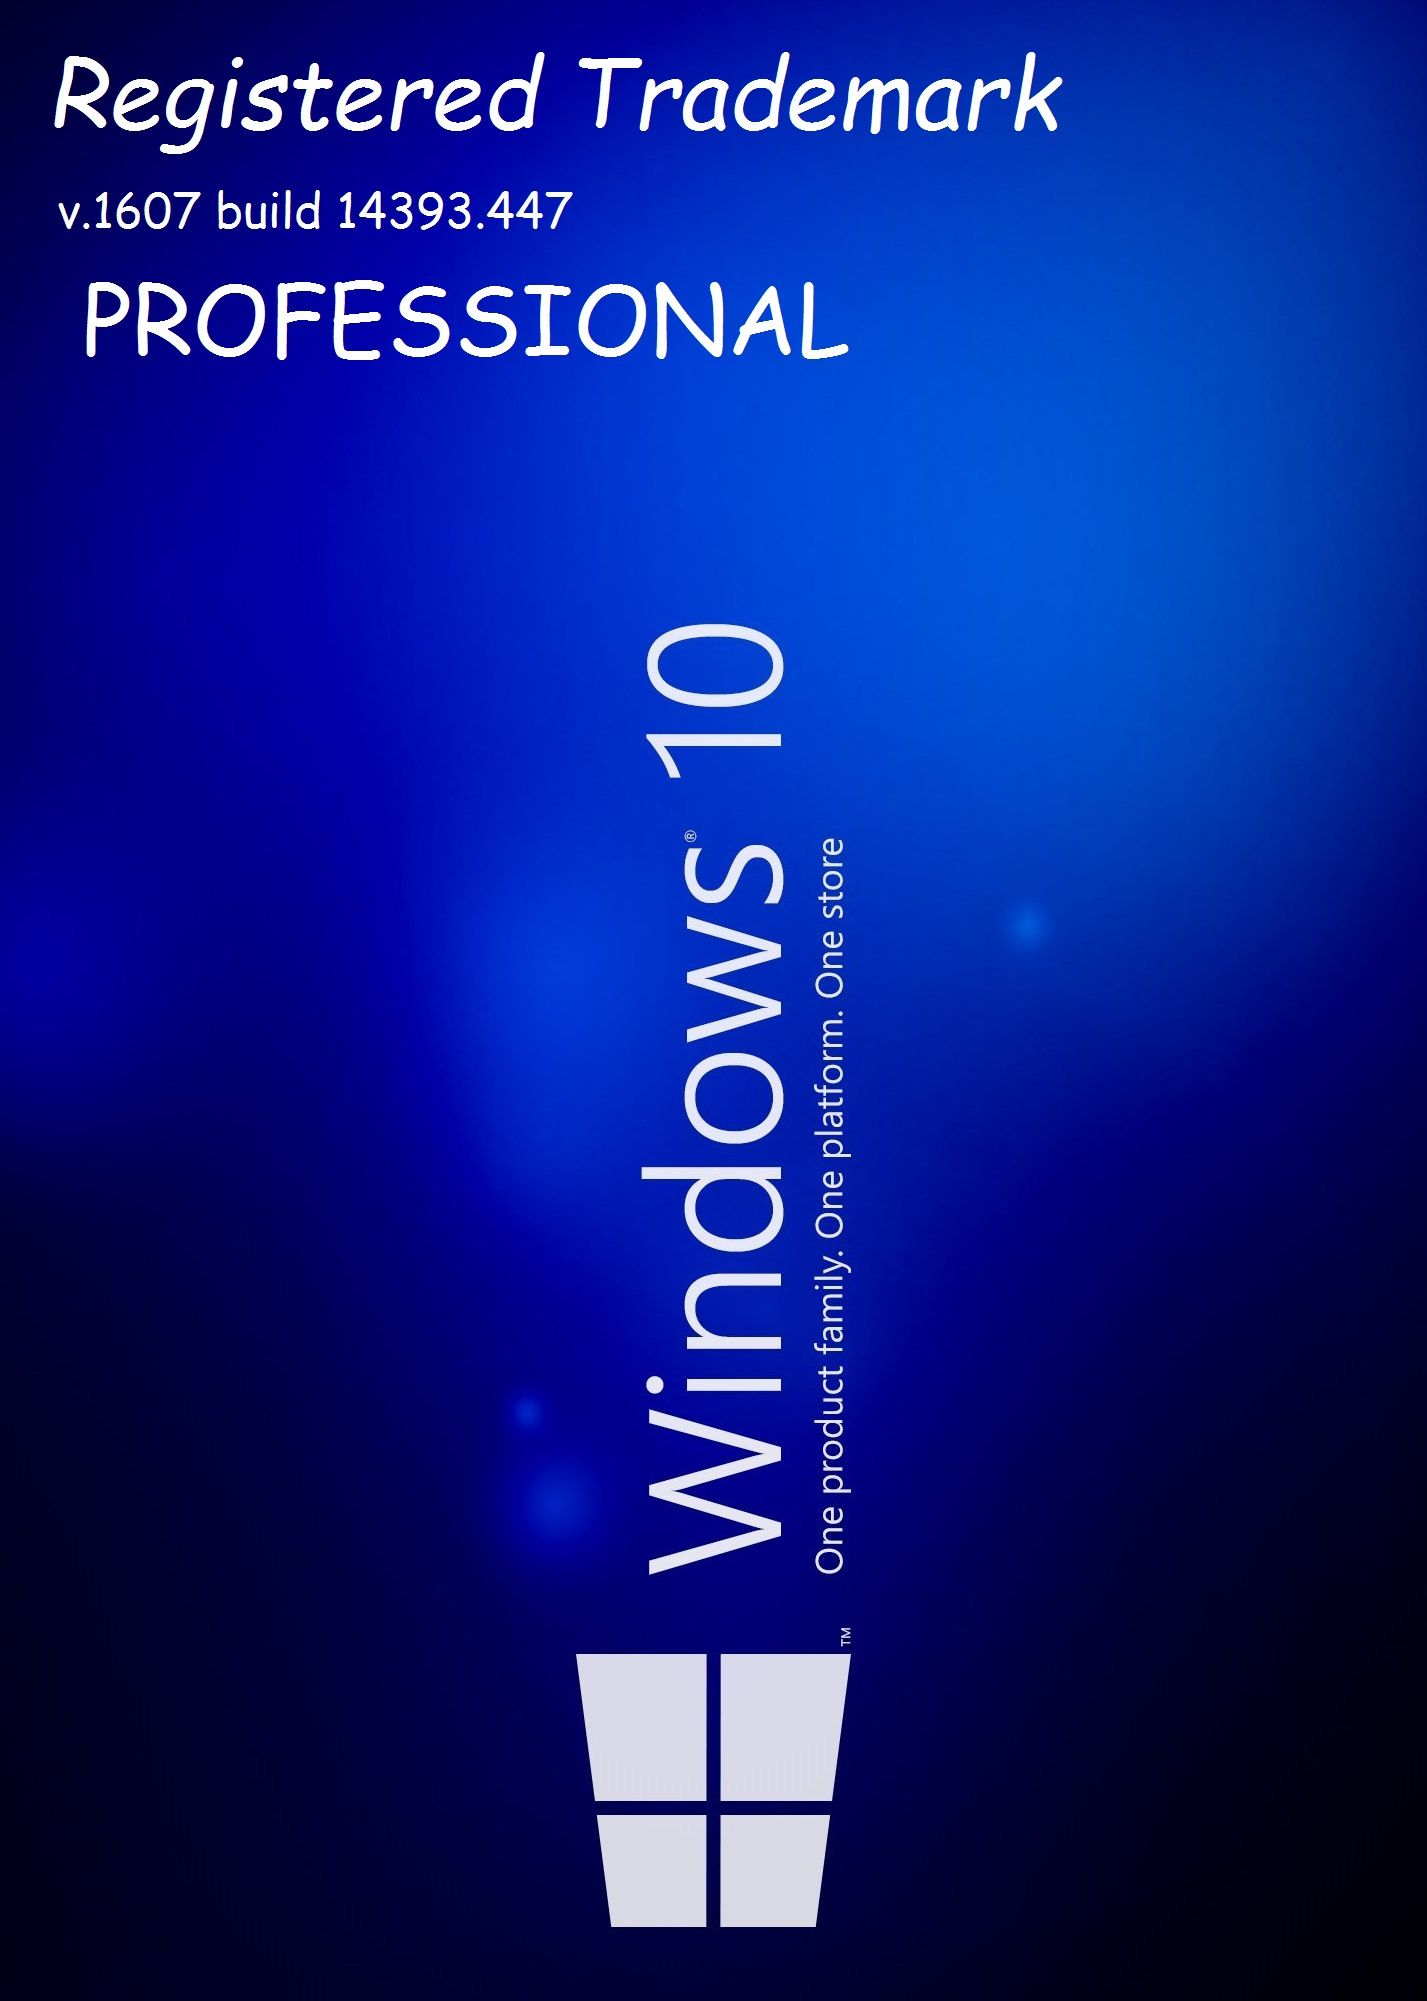 Windows 10 Pro Registered Trademark v1607 14393.447_update_21.11.16